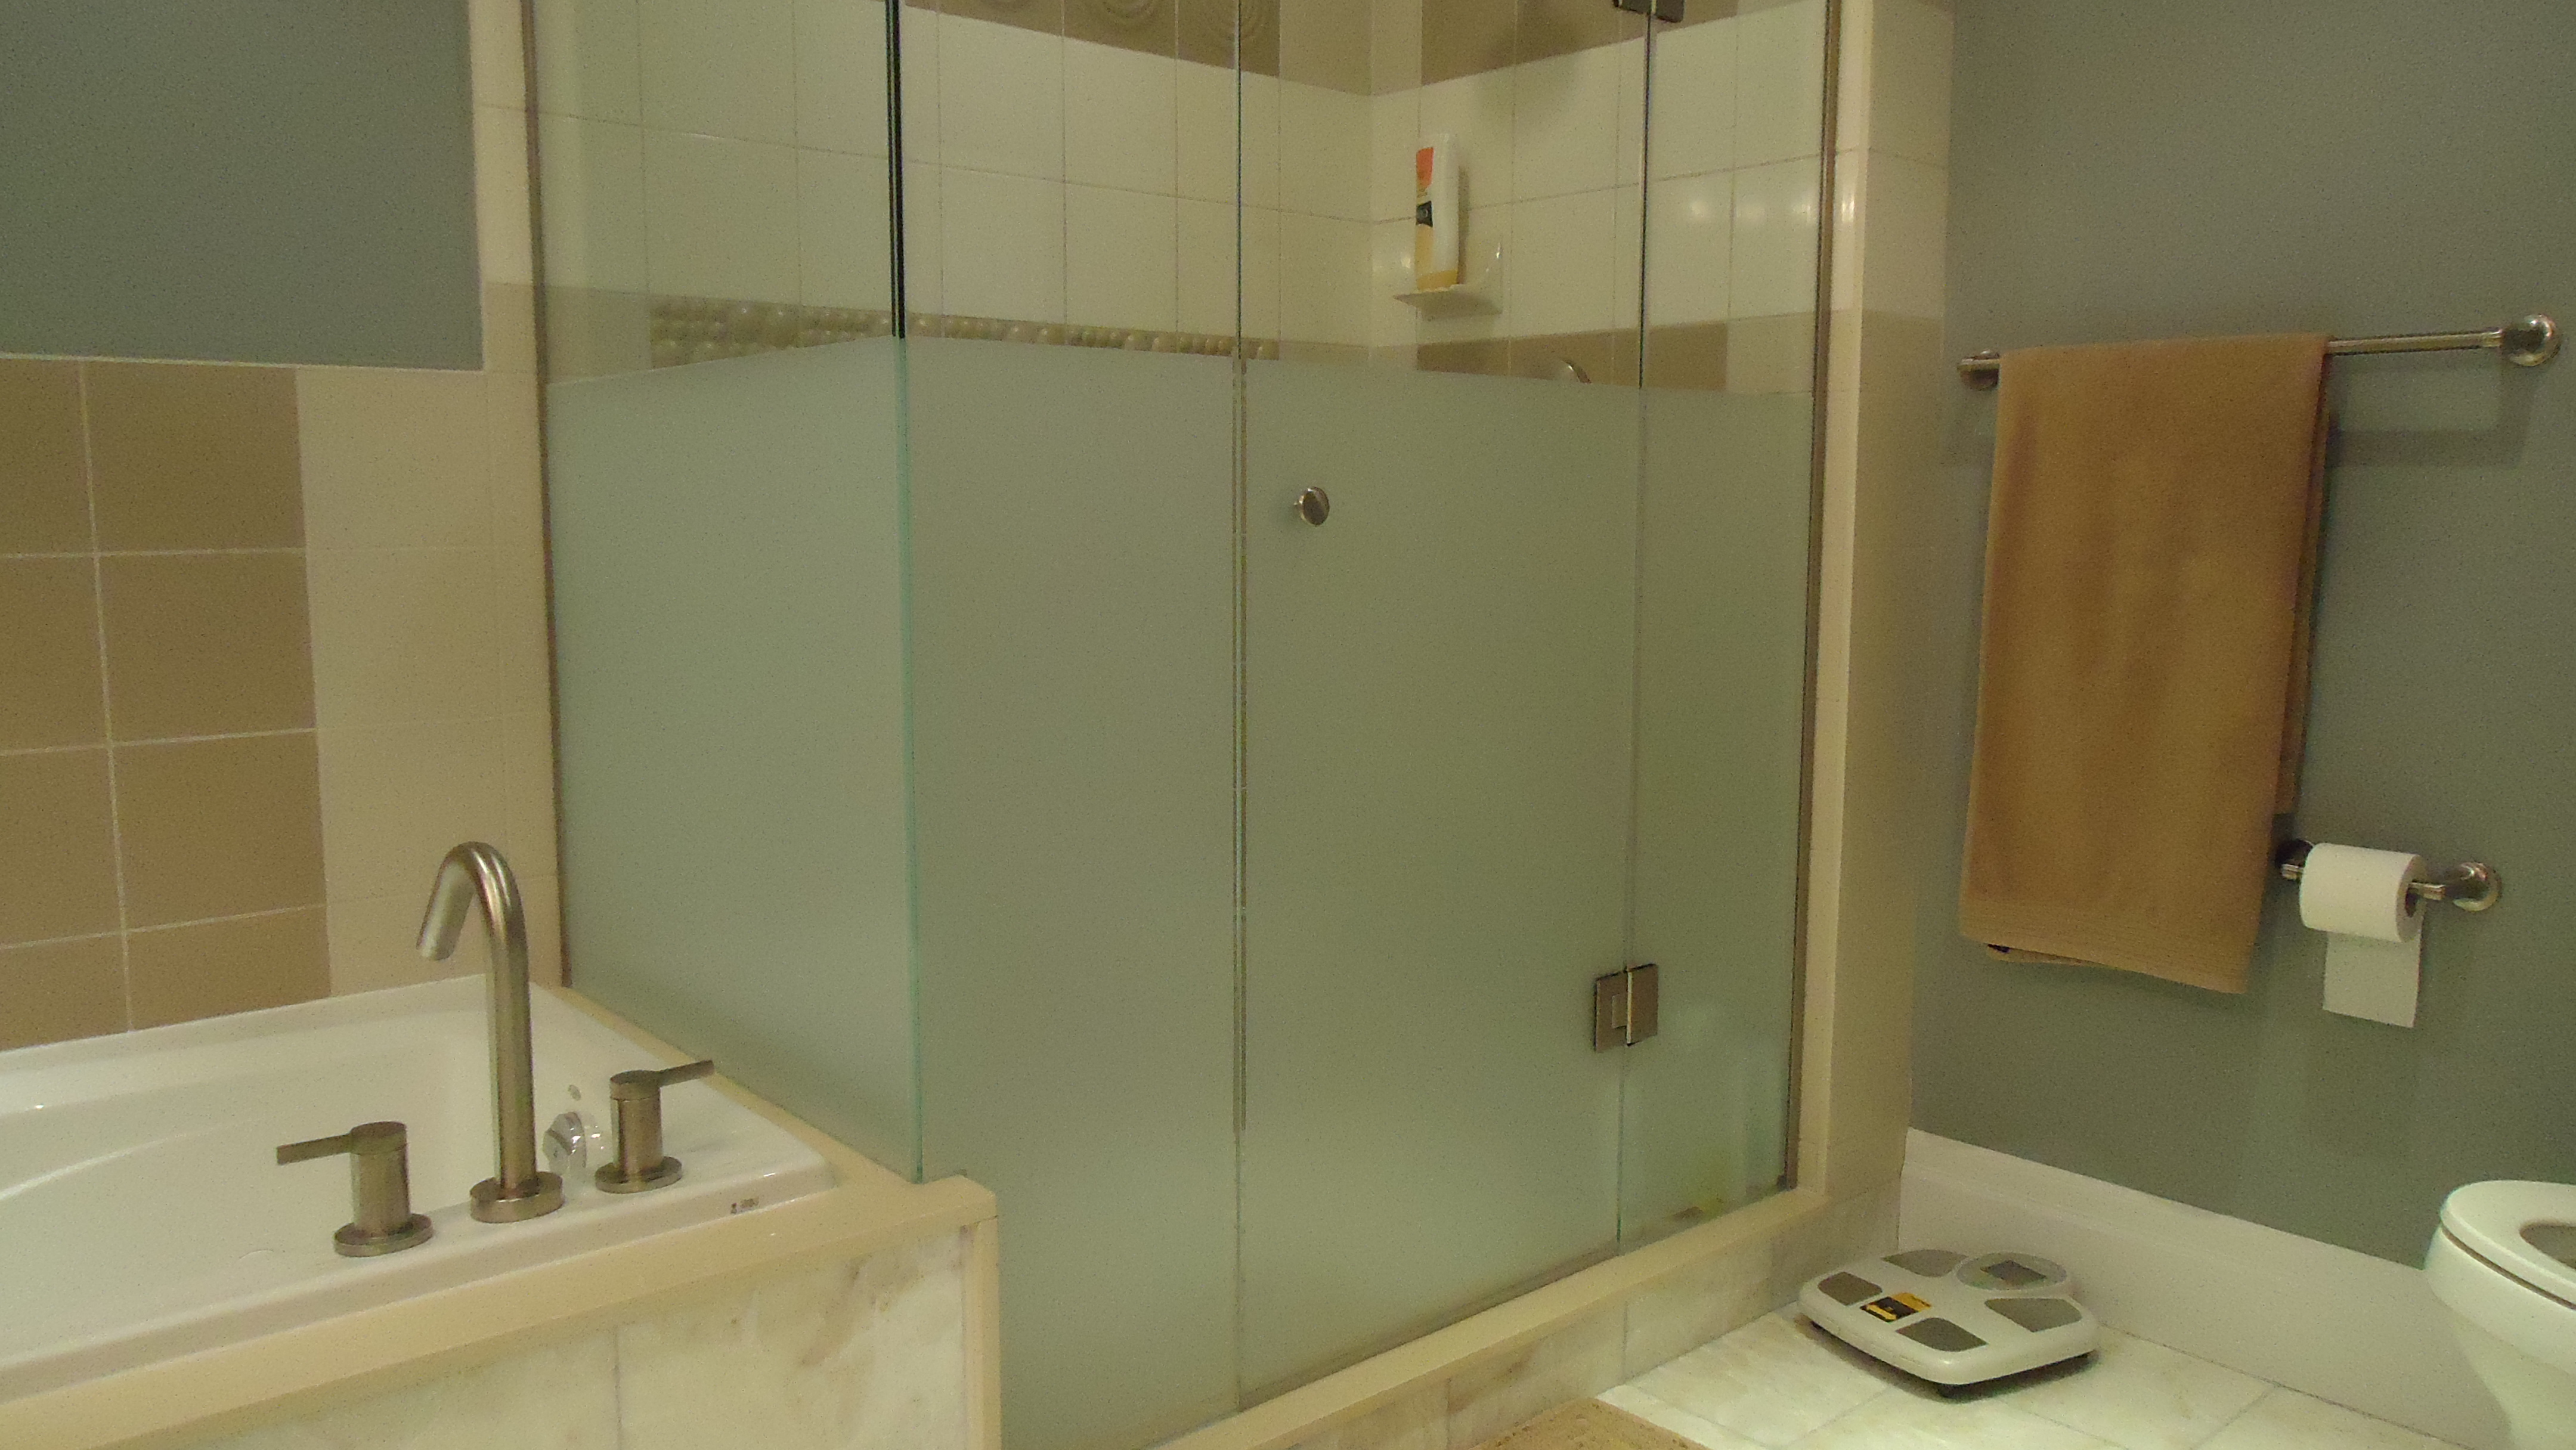 Adding privacy to a glass shower